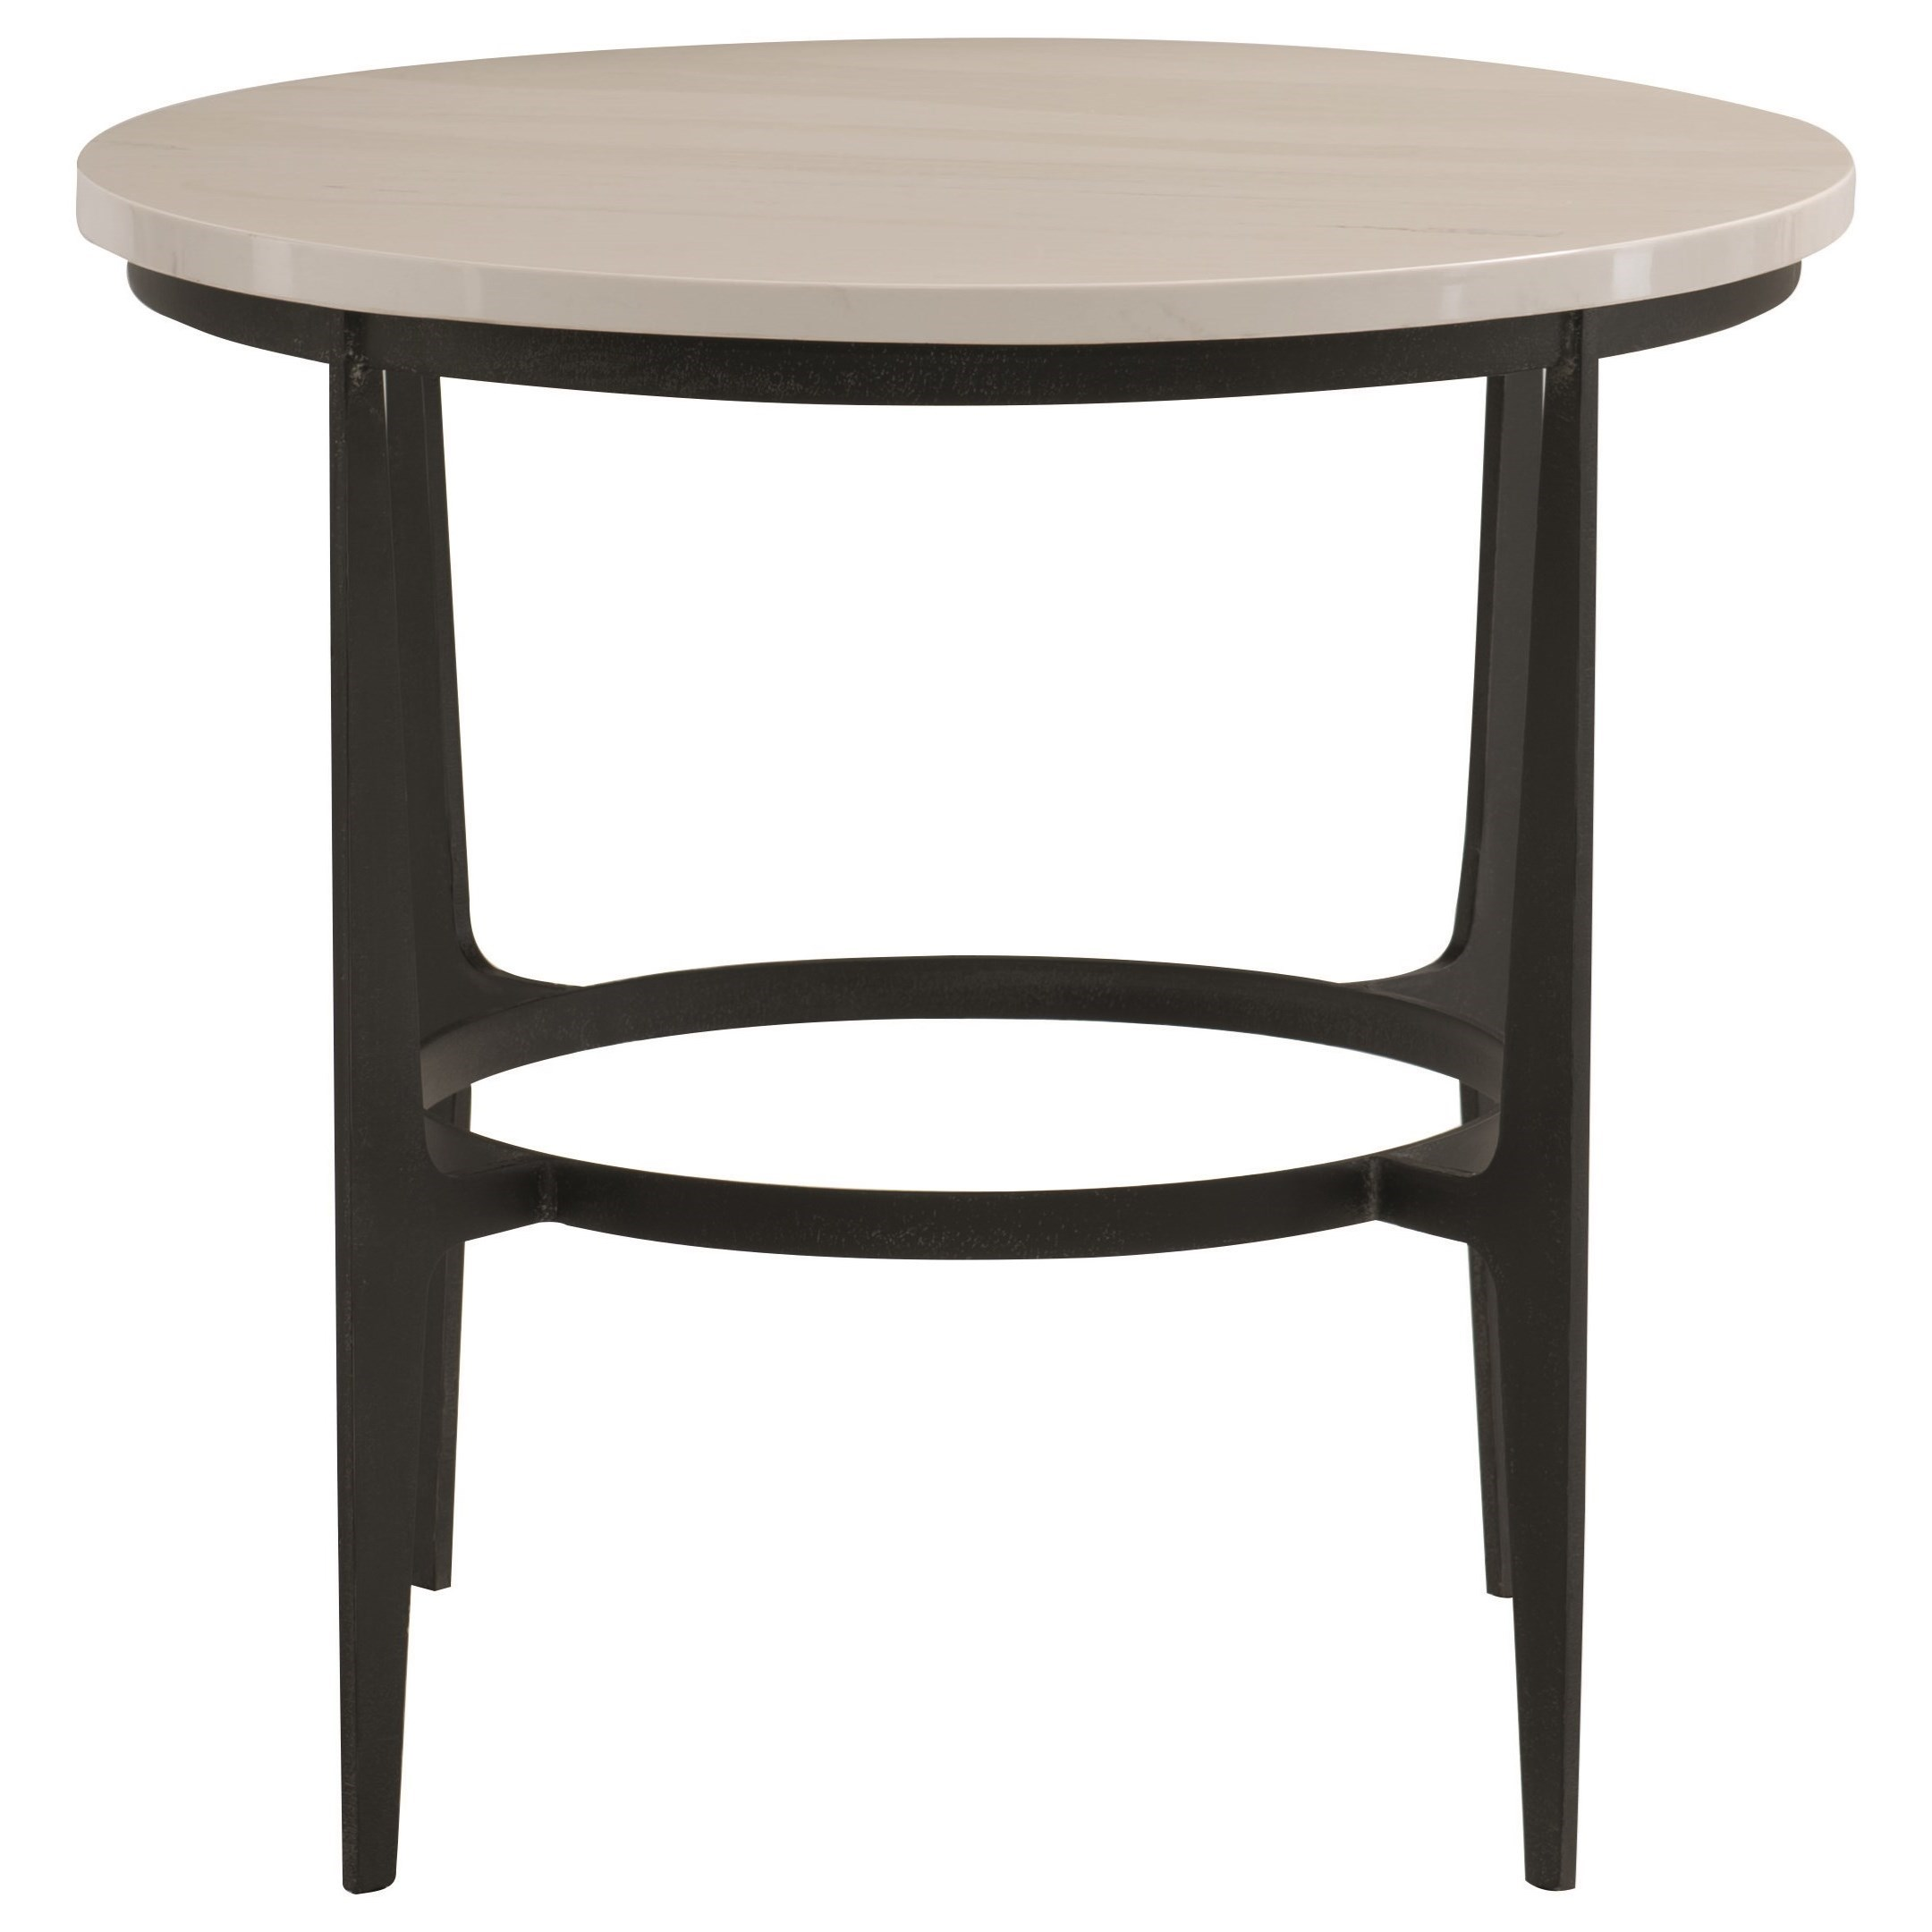 Avondale Round Metal End Table by Bernhardt at Darvin Furniture